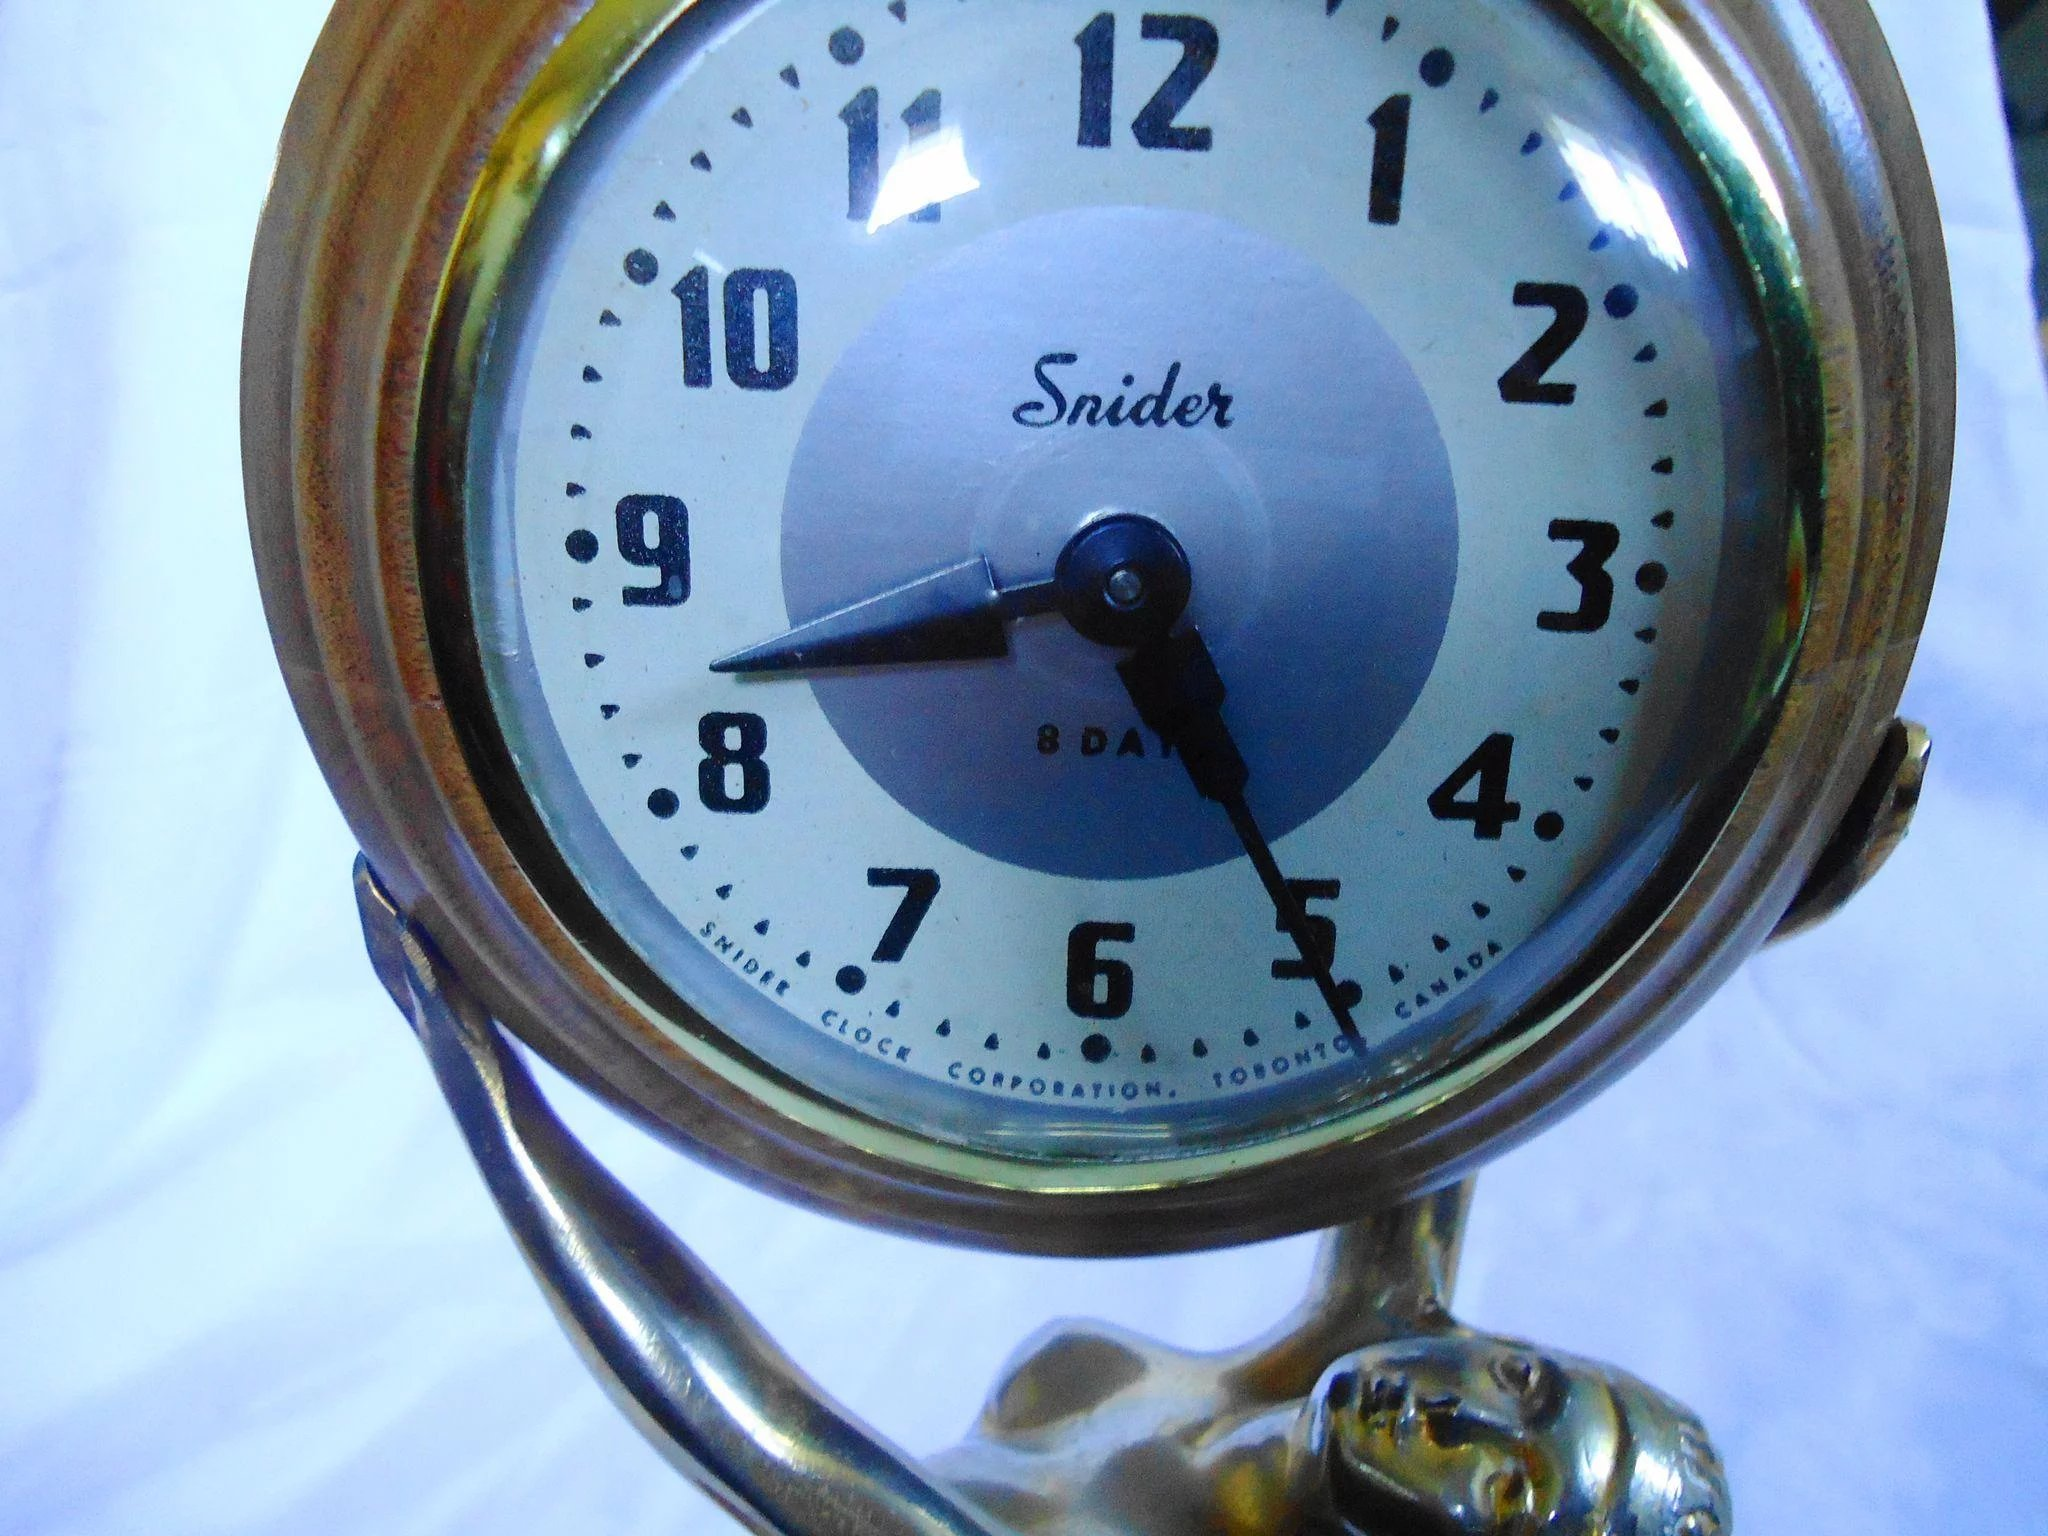 Snider 8 Day Nude Clock from sweetcandy on Ruby Lane